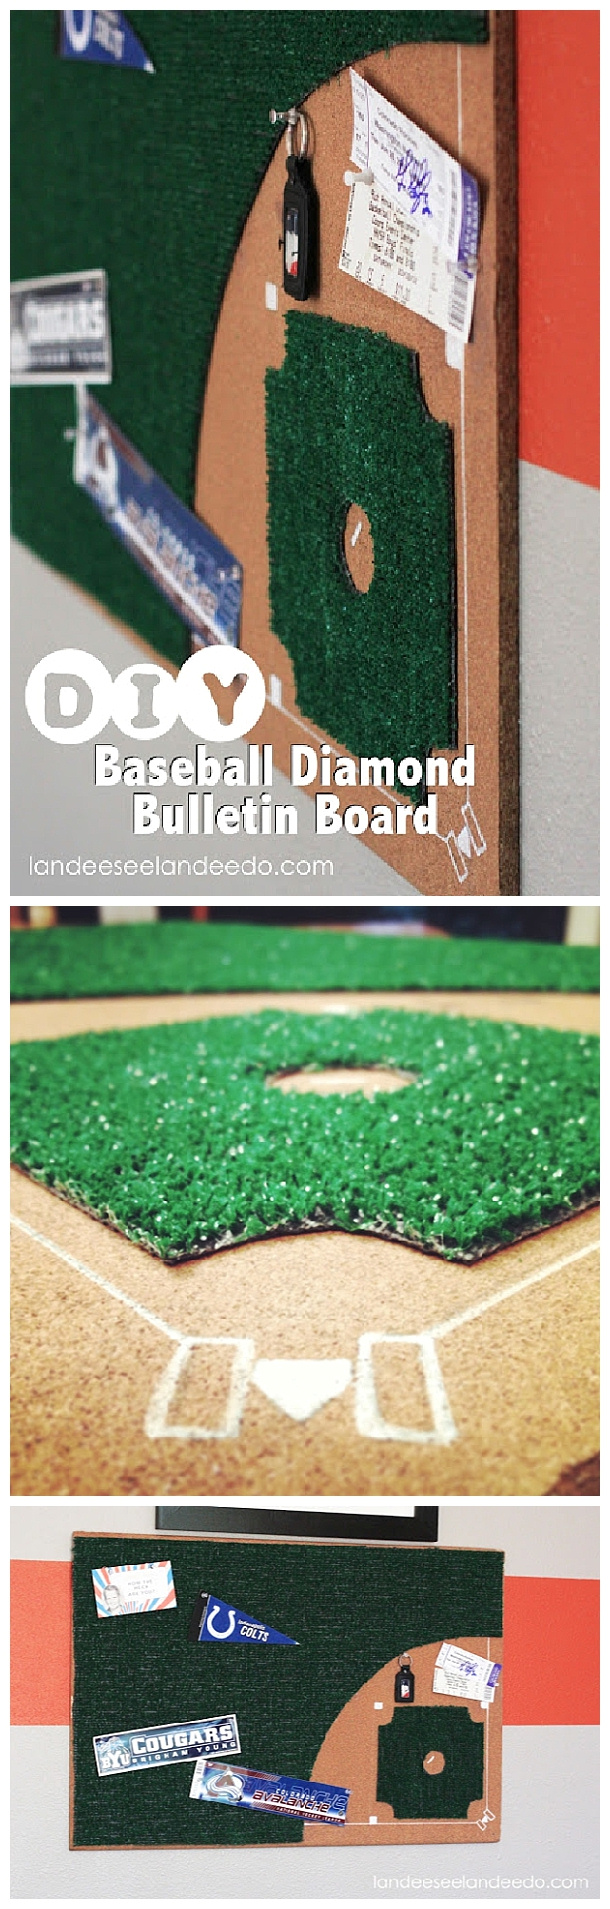 DIY Baseball Diamond Bulletin Board = Easy Do it Yourself Project Tutorial - perfect for Dad's den, man cave or the office! Tutorial via Landeelu